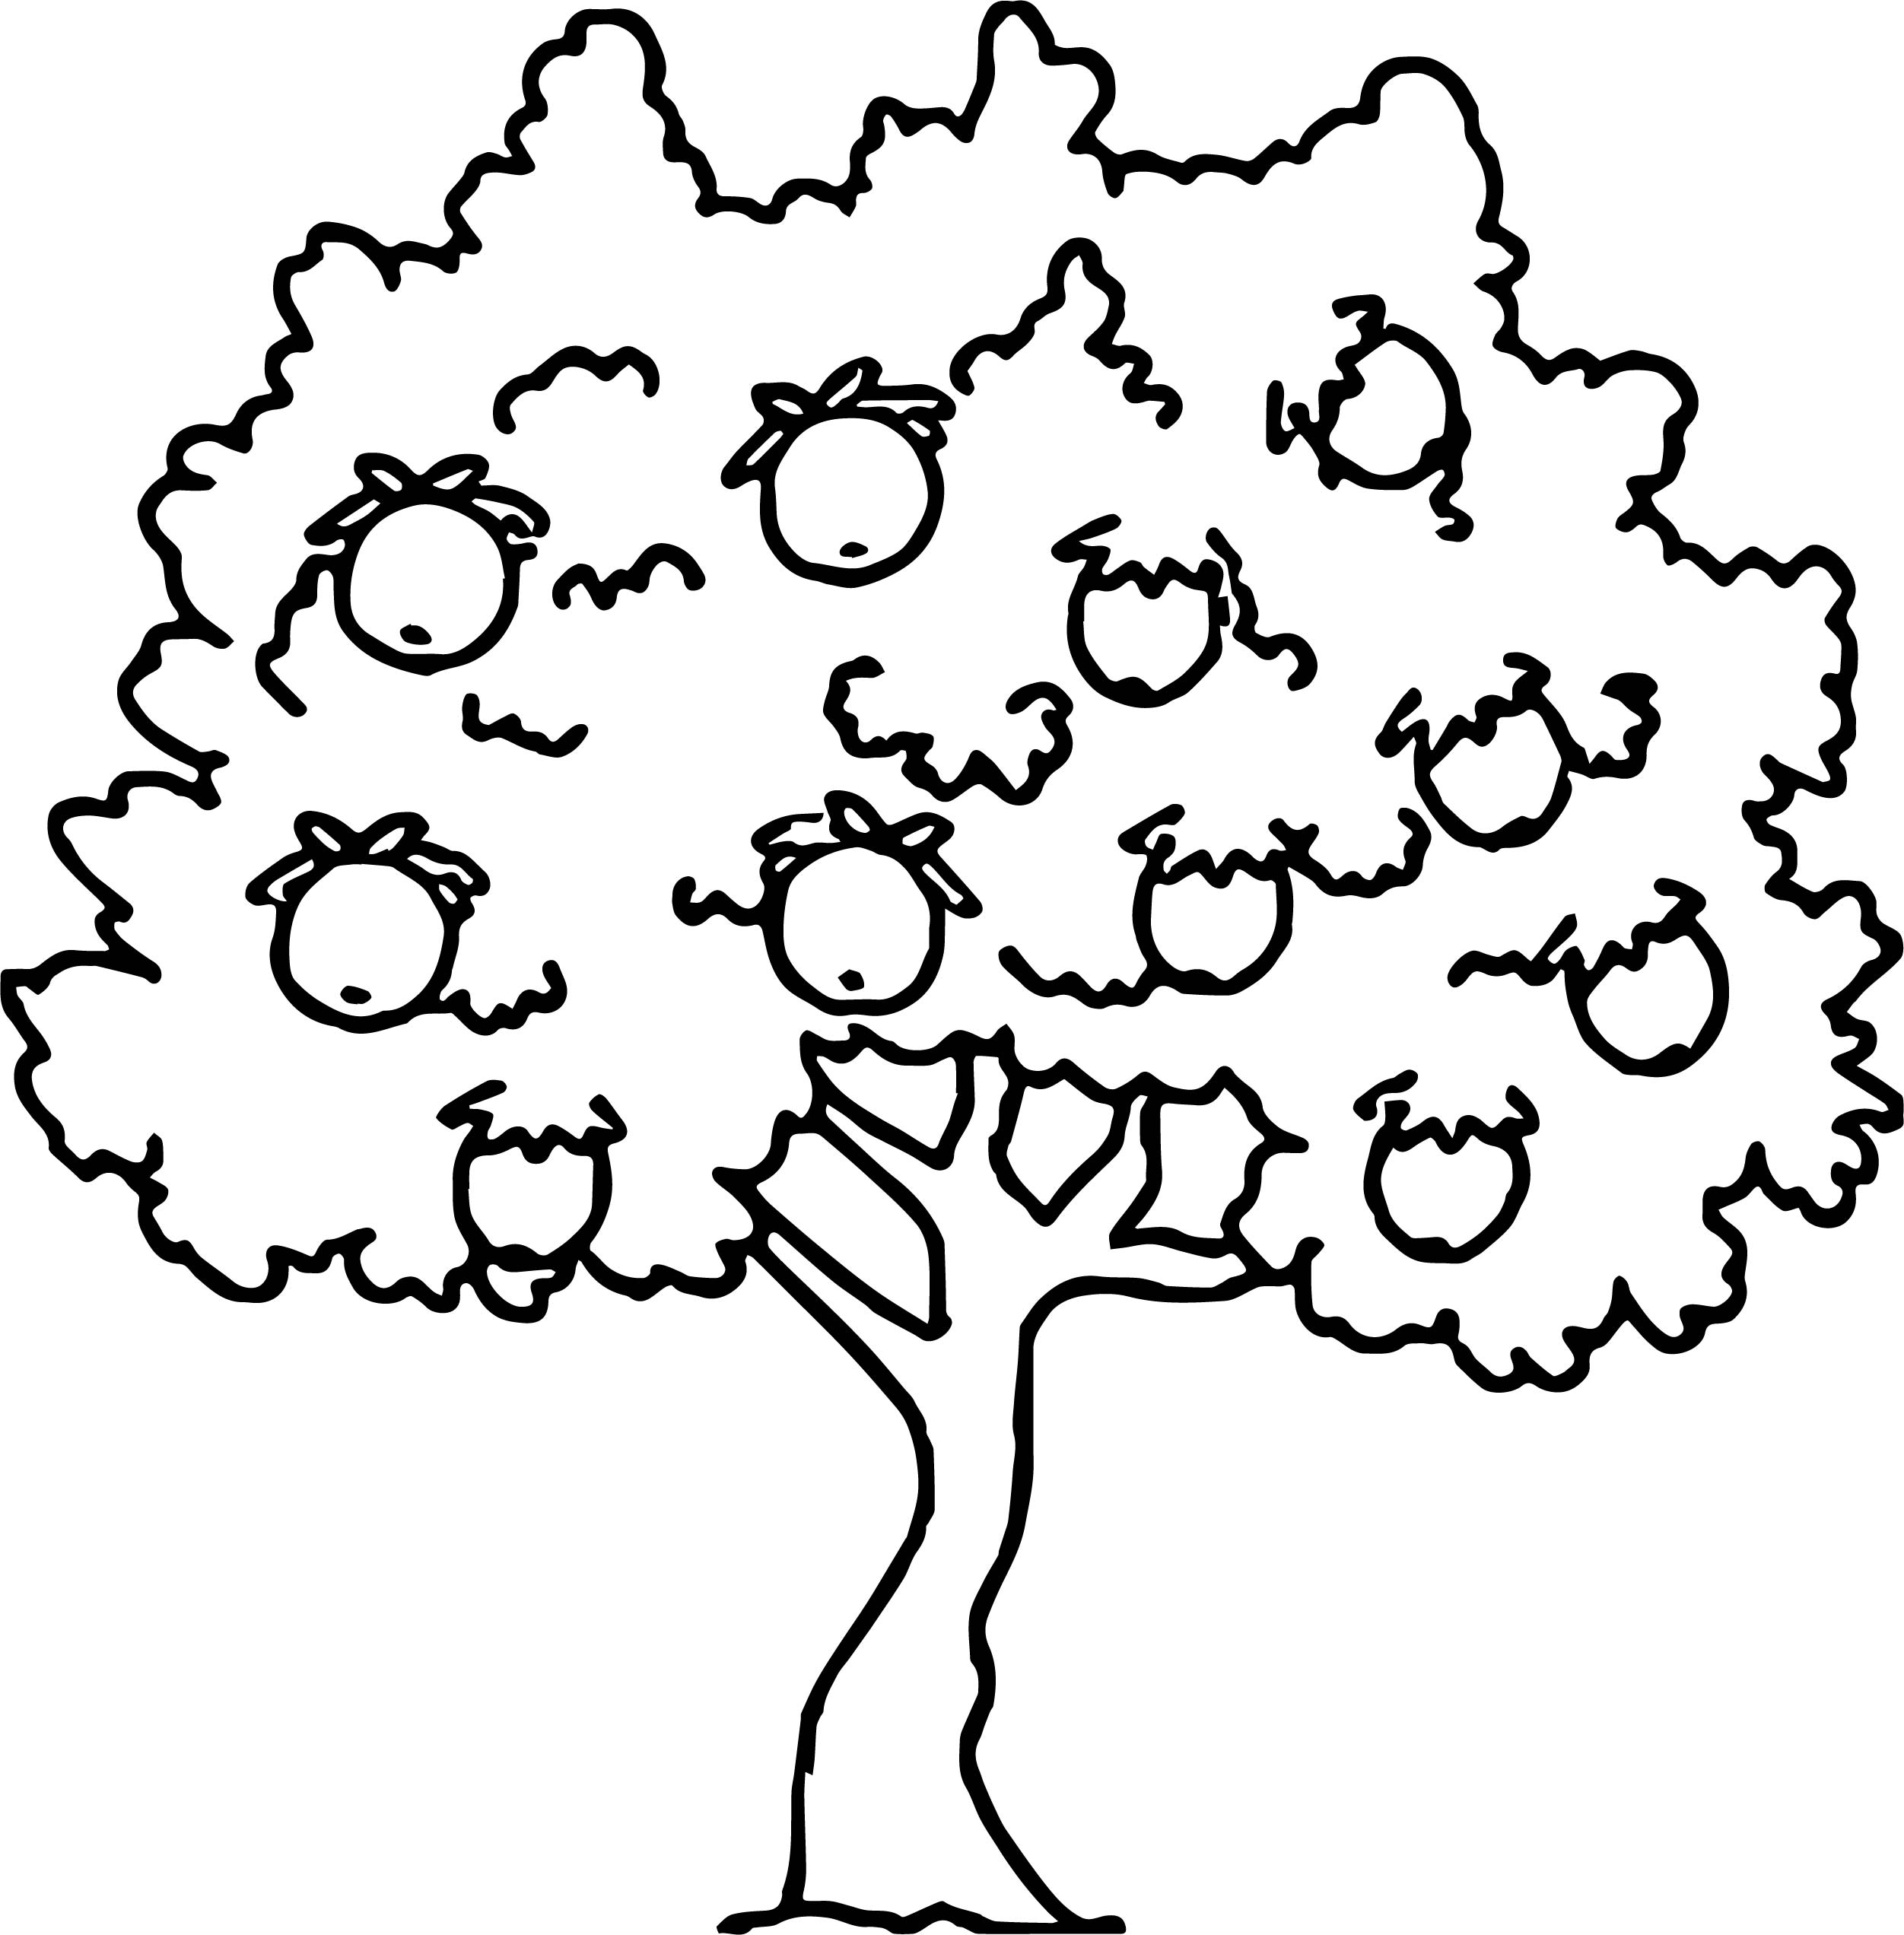 Strange Fruit Tree Coloring Page Stock Illustr Unknown Printable Of Noted Coloring Picture A Tree Pages Unknown Resolutions Printable